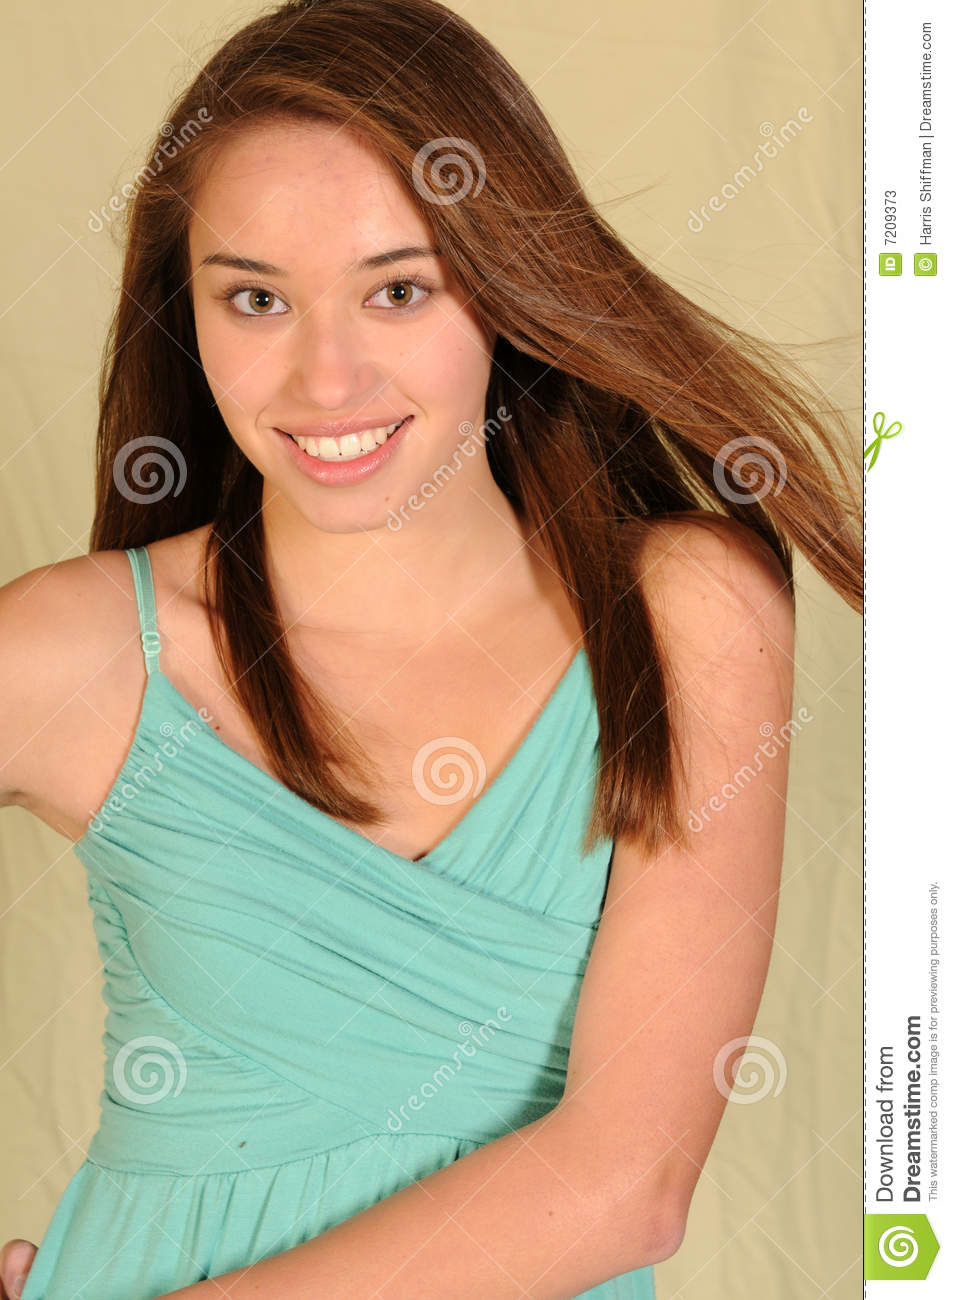 Pretty young teenage girl with long brown hair